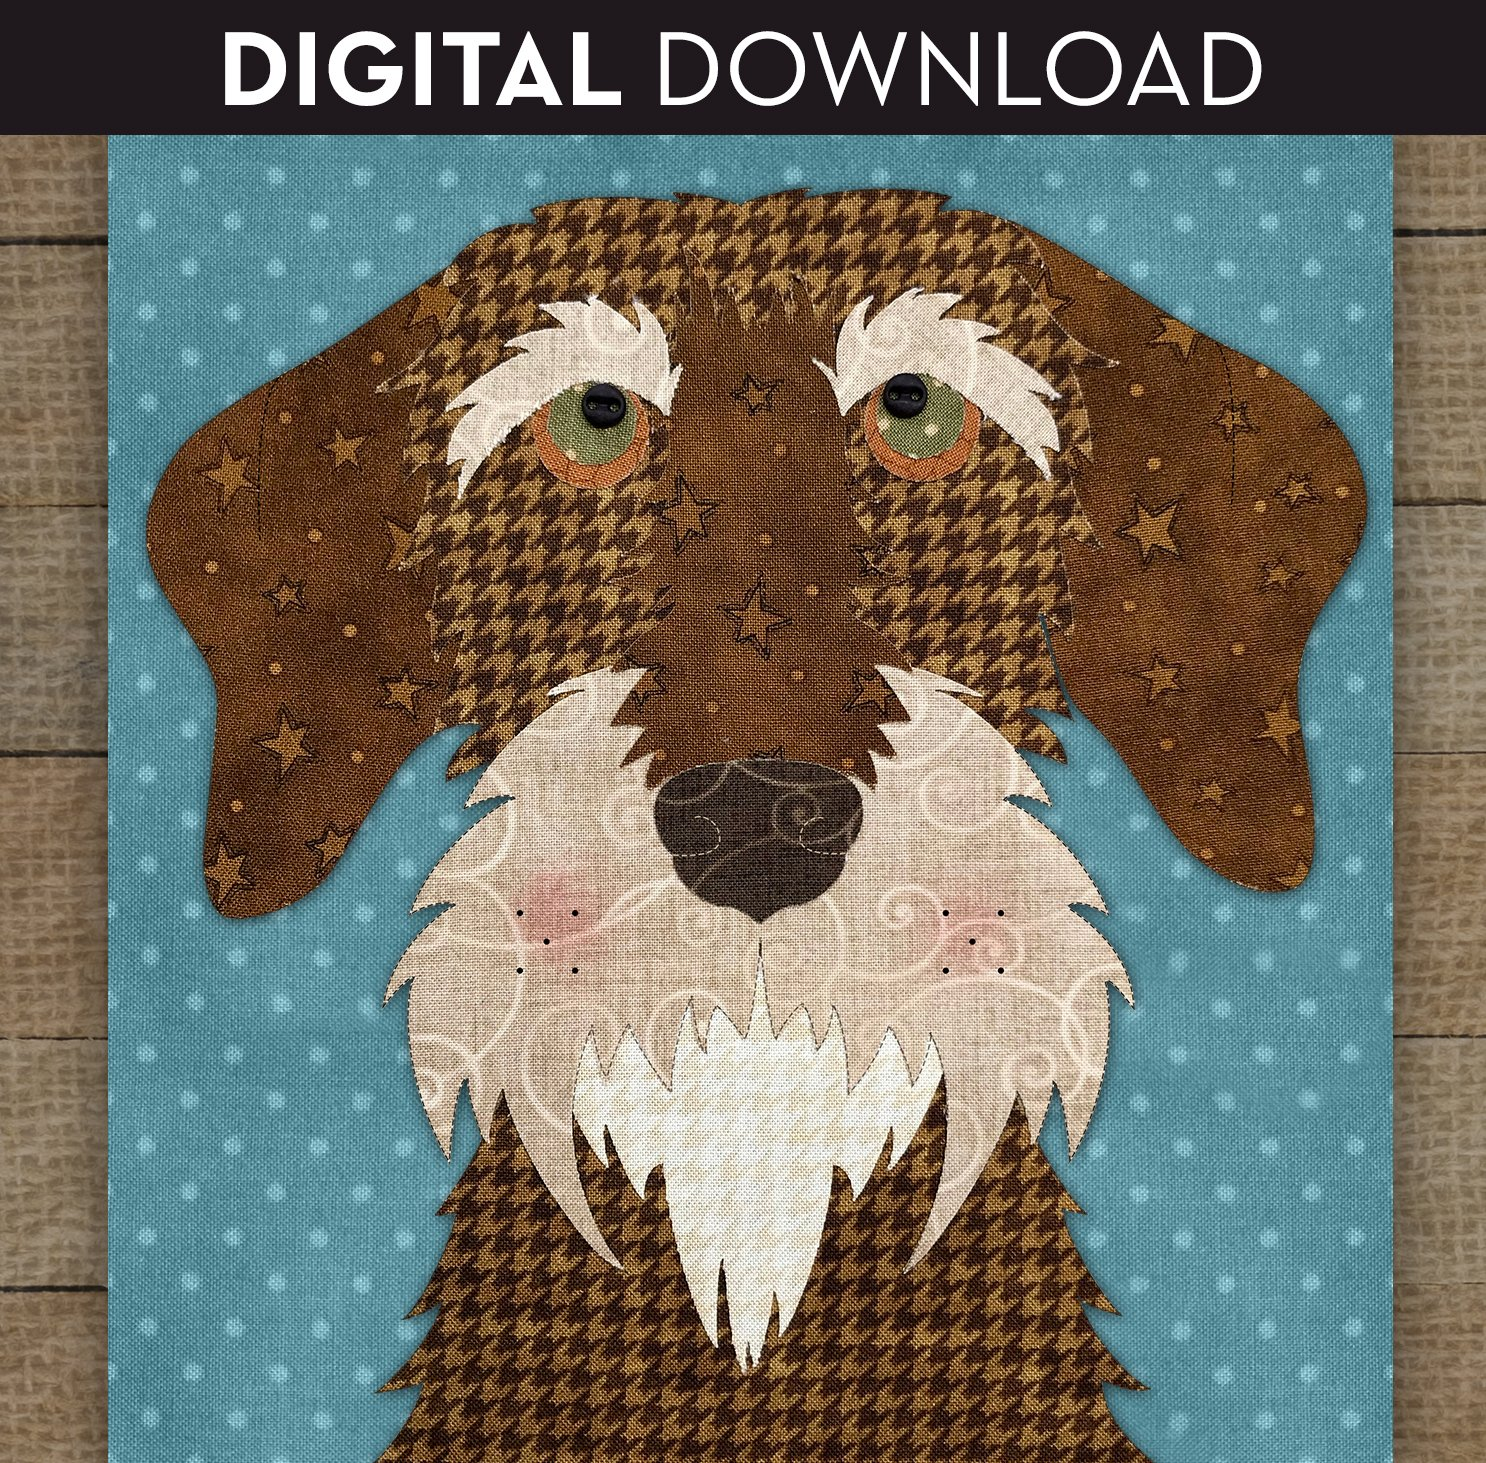 Wire Haired Dachshund - Download